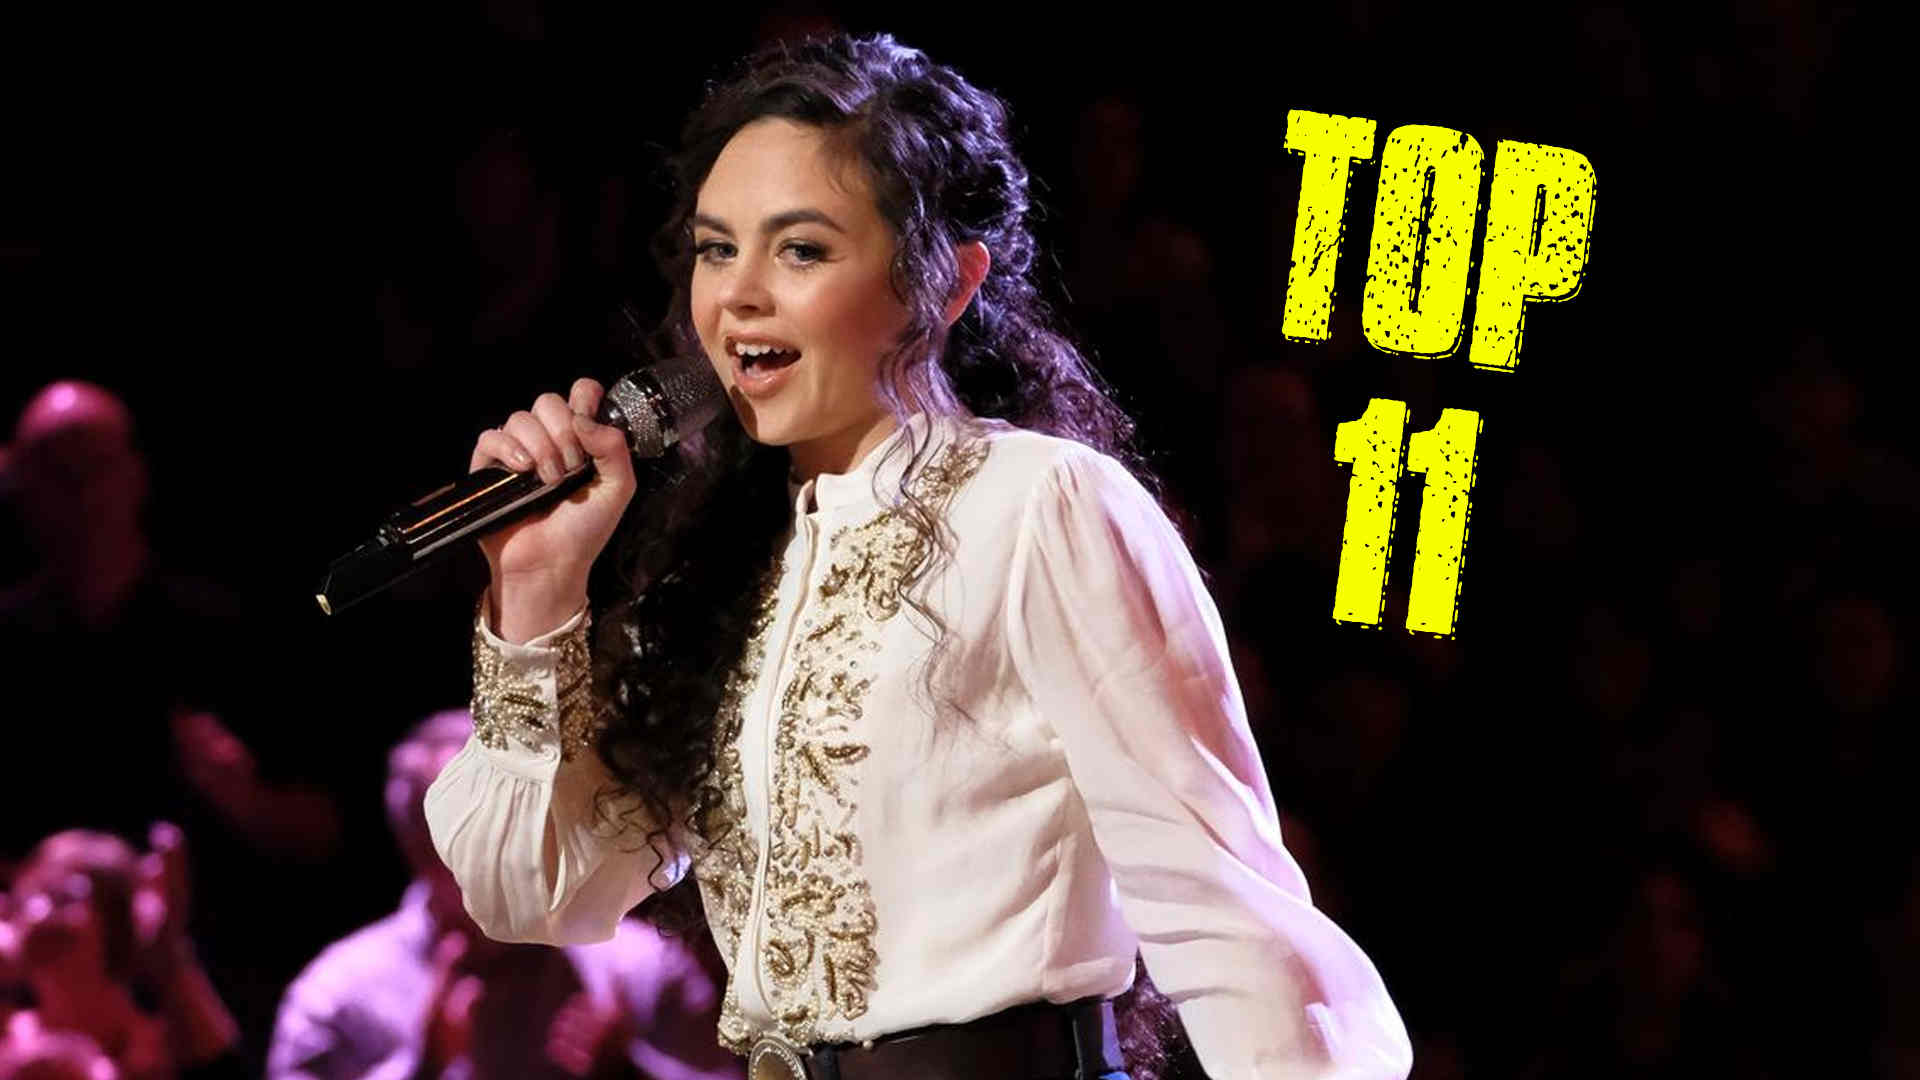 Vote Chevel Shepherd the Voice 2018 Live Top 11 on 26 November 2018 with The Voice 2018 Voting App Online